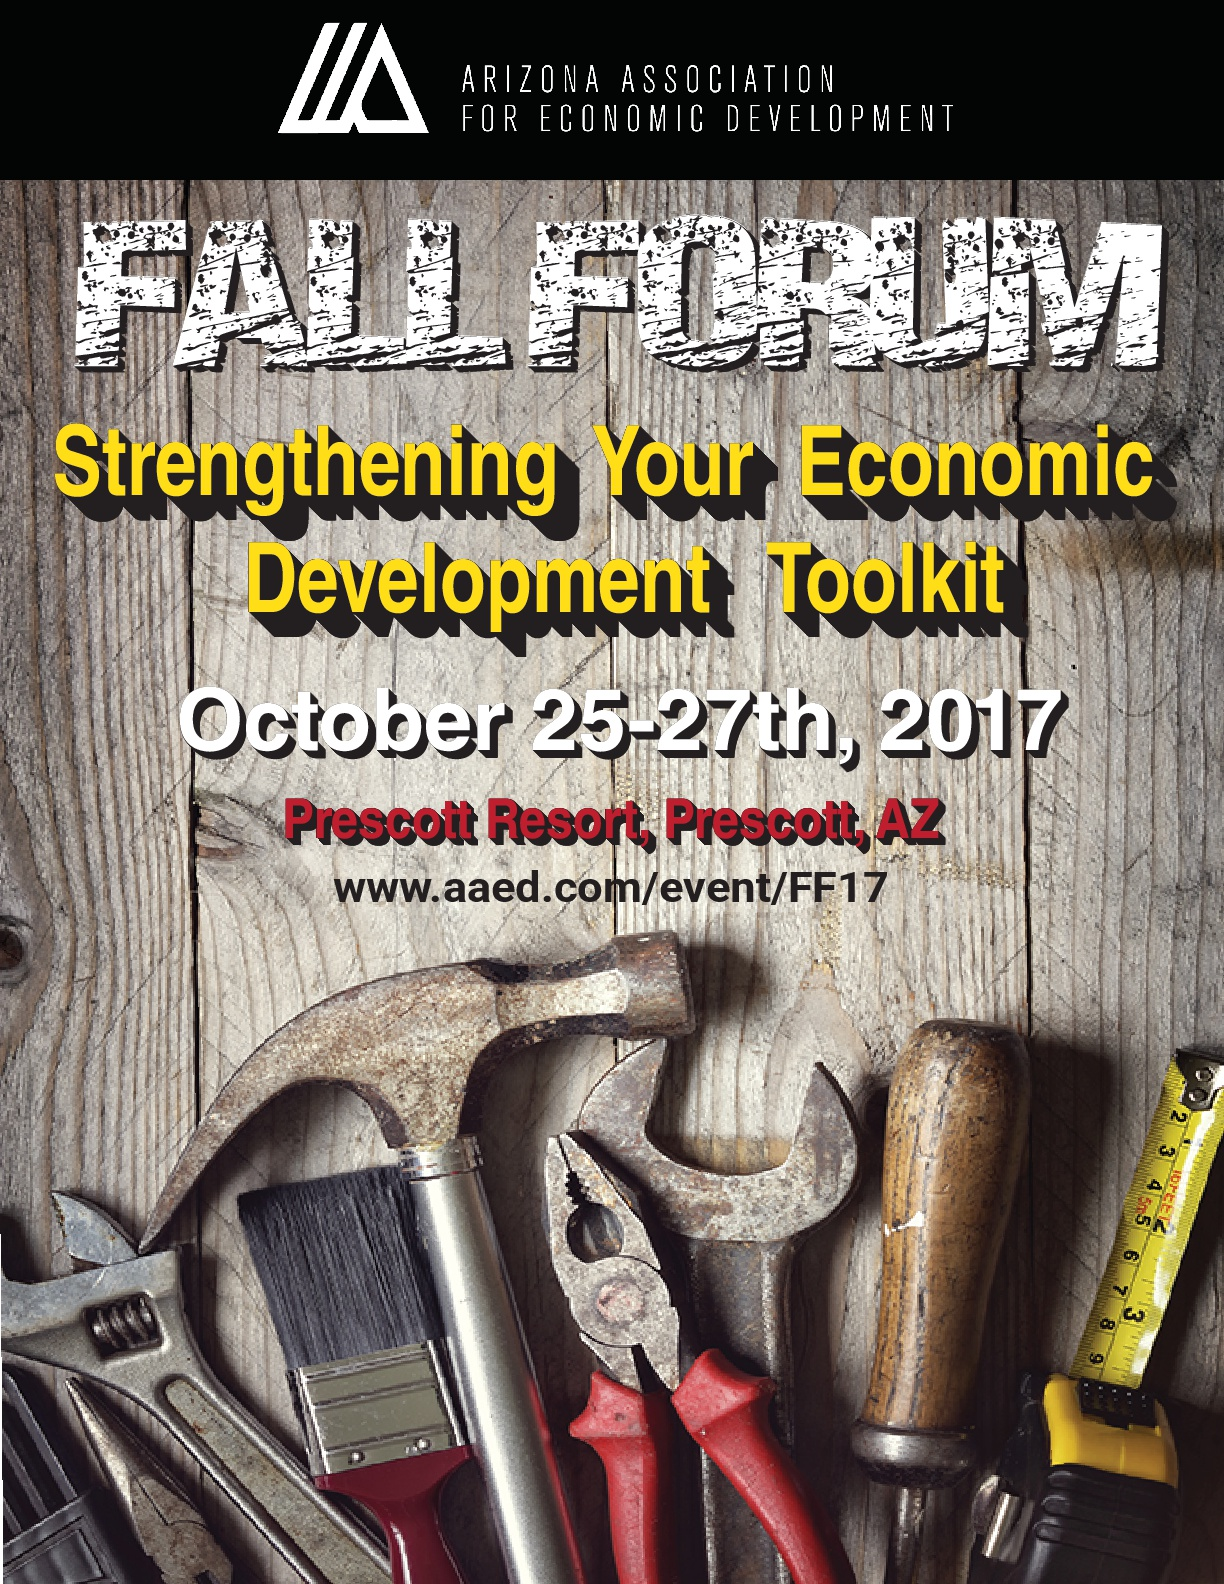 AAED Fall Forum - Strengthening Your Economic Development Toolkit @ Prescott Resort | Prescott | Arizona | United States